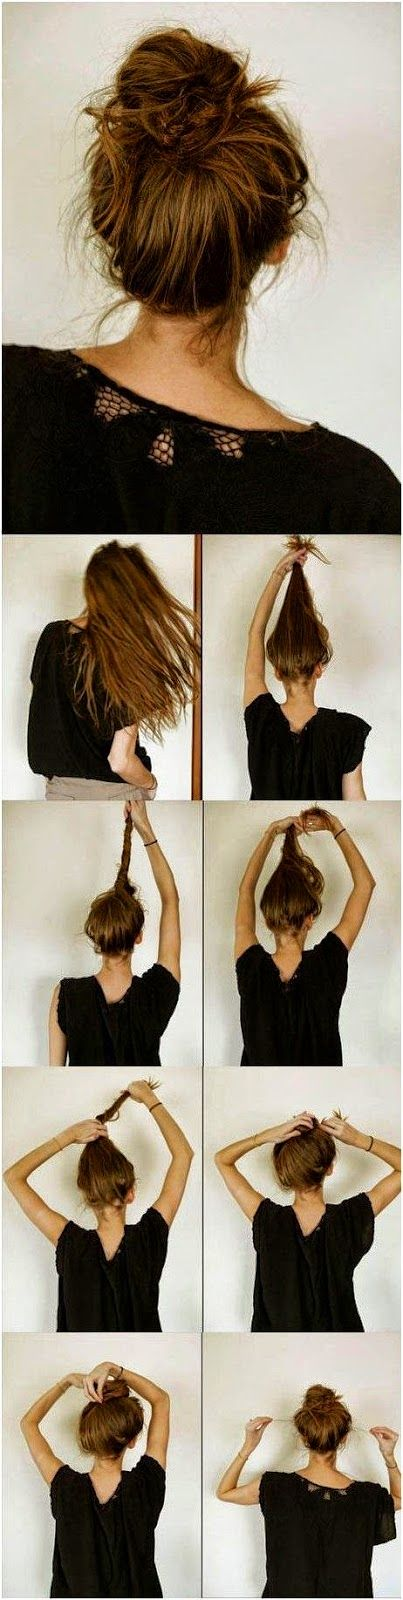 Awe Inspiring 1000 Ideas About Messy Buns On Pinterest Buns Braids And Hair Hairstyles For Women Draintrainus